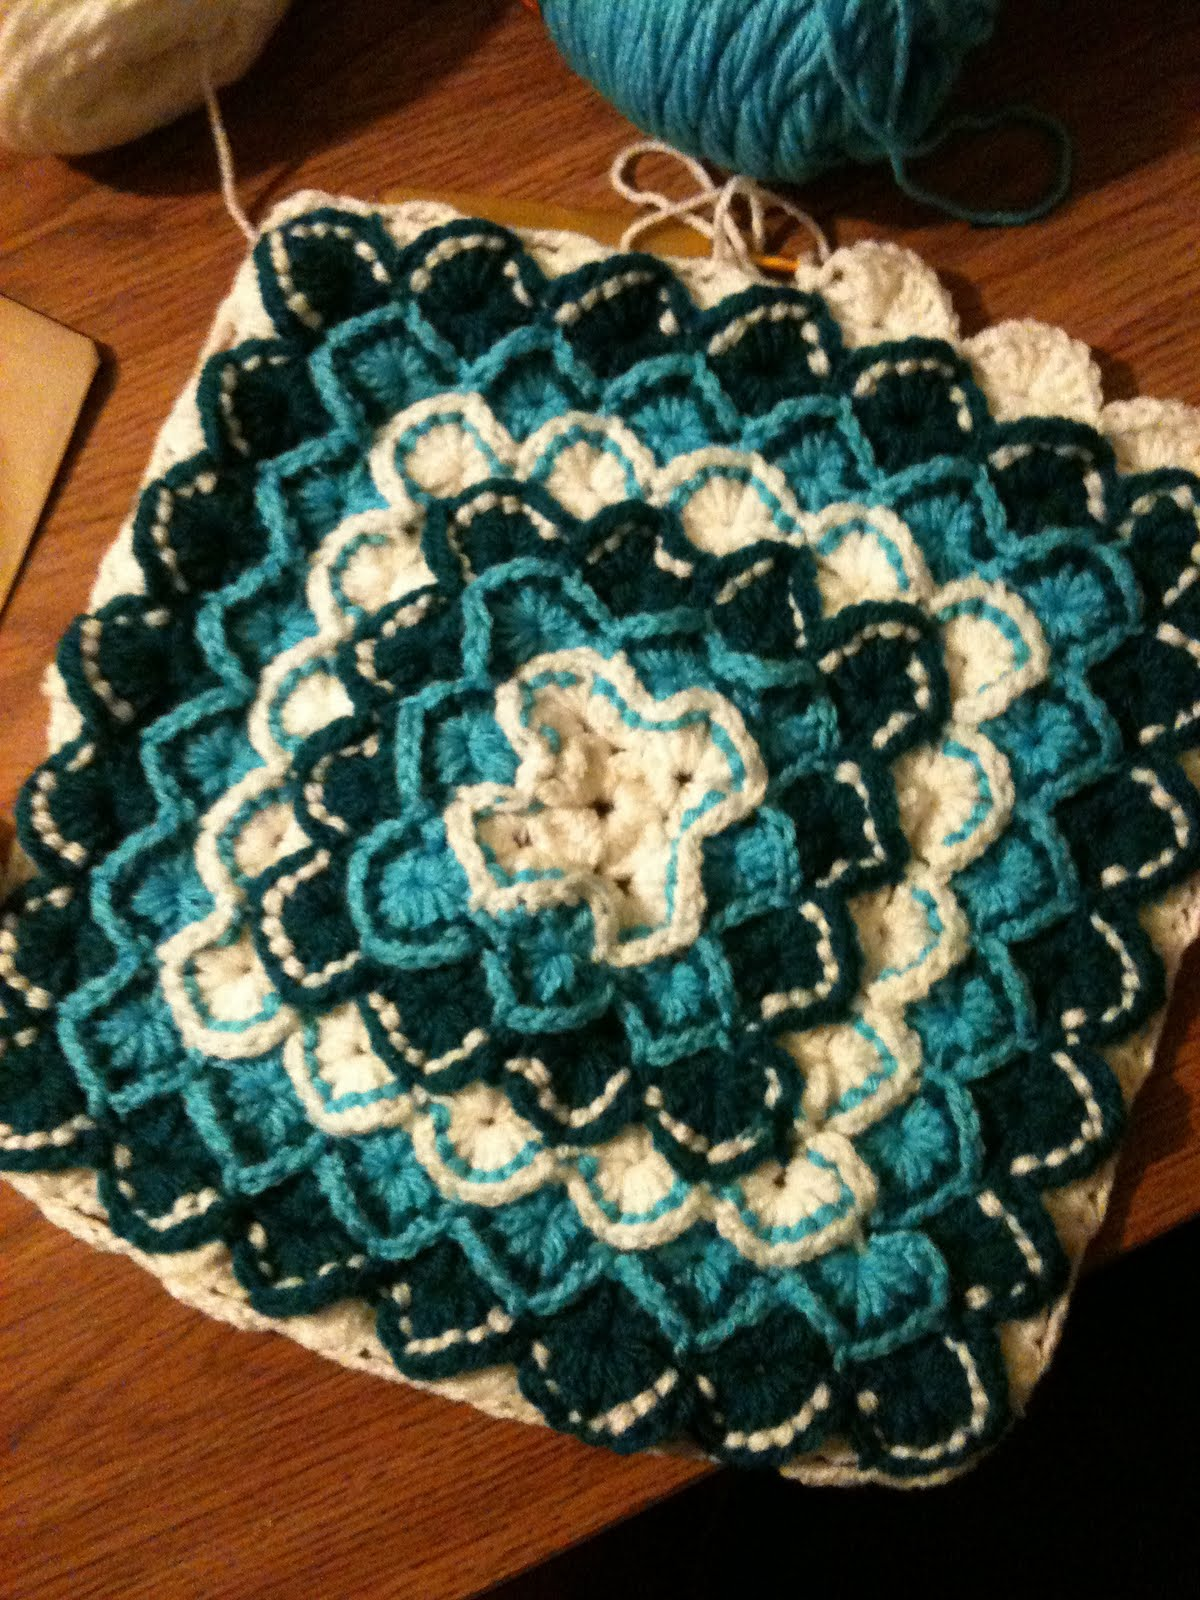 Free Crochet Pattern Lap Blanket : ALKO_Hawaii: New crochet lap blanket